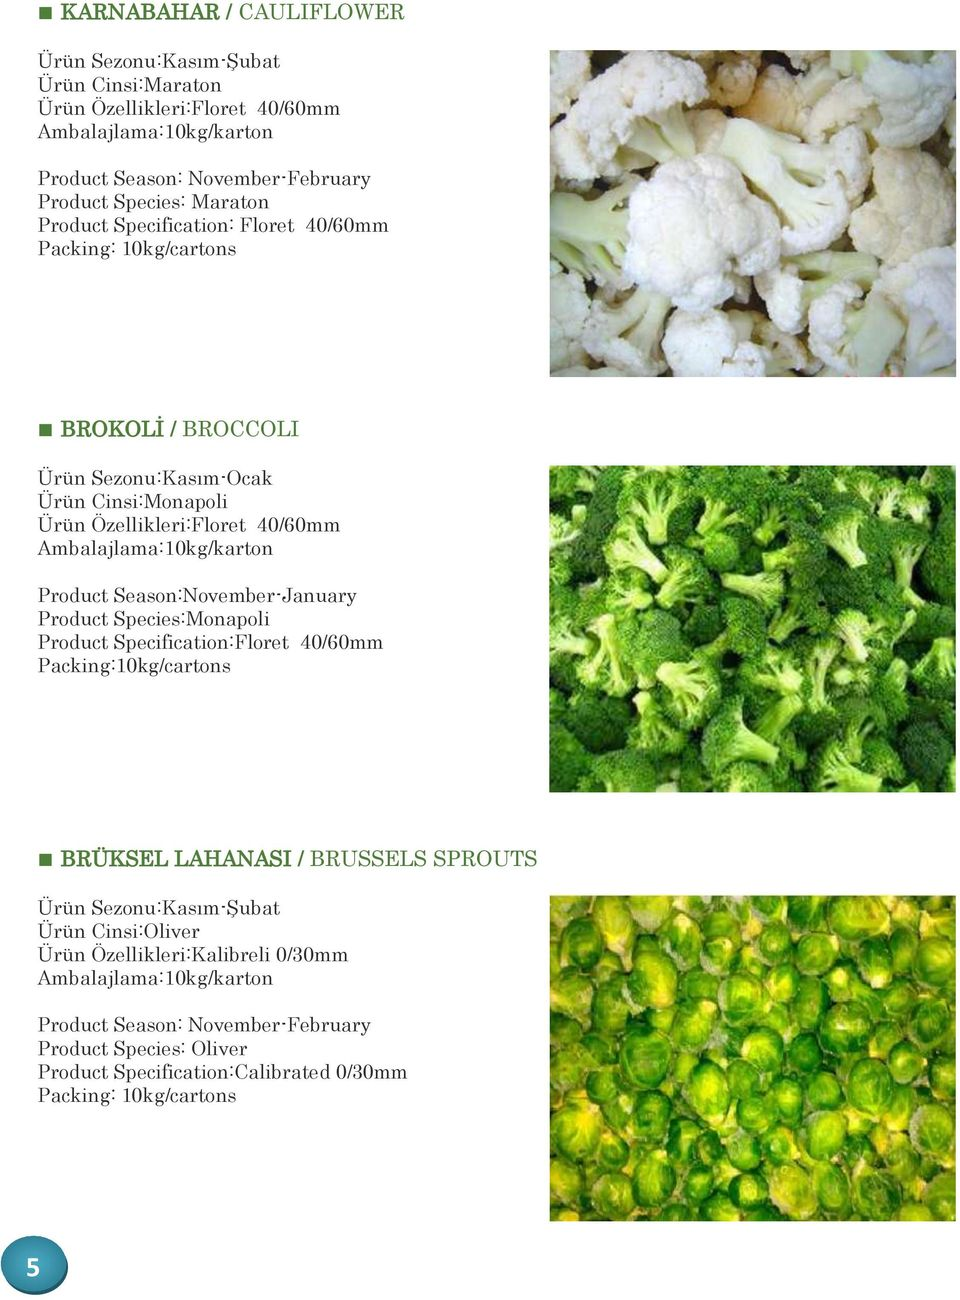 Product Season:November-January Product Species:Monapoli Product Specification:Floret 40/60mm BRÜKSEL LAHANASI / BRUSSELS SPROUTS Ürün